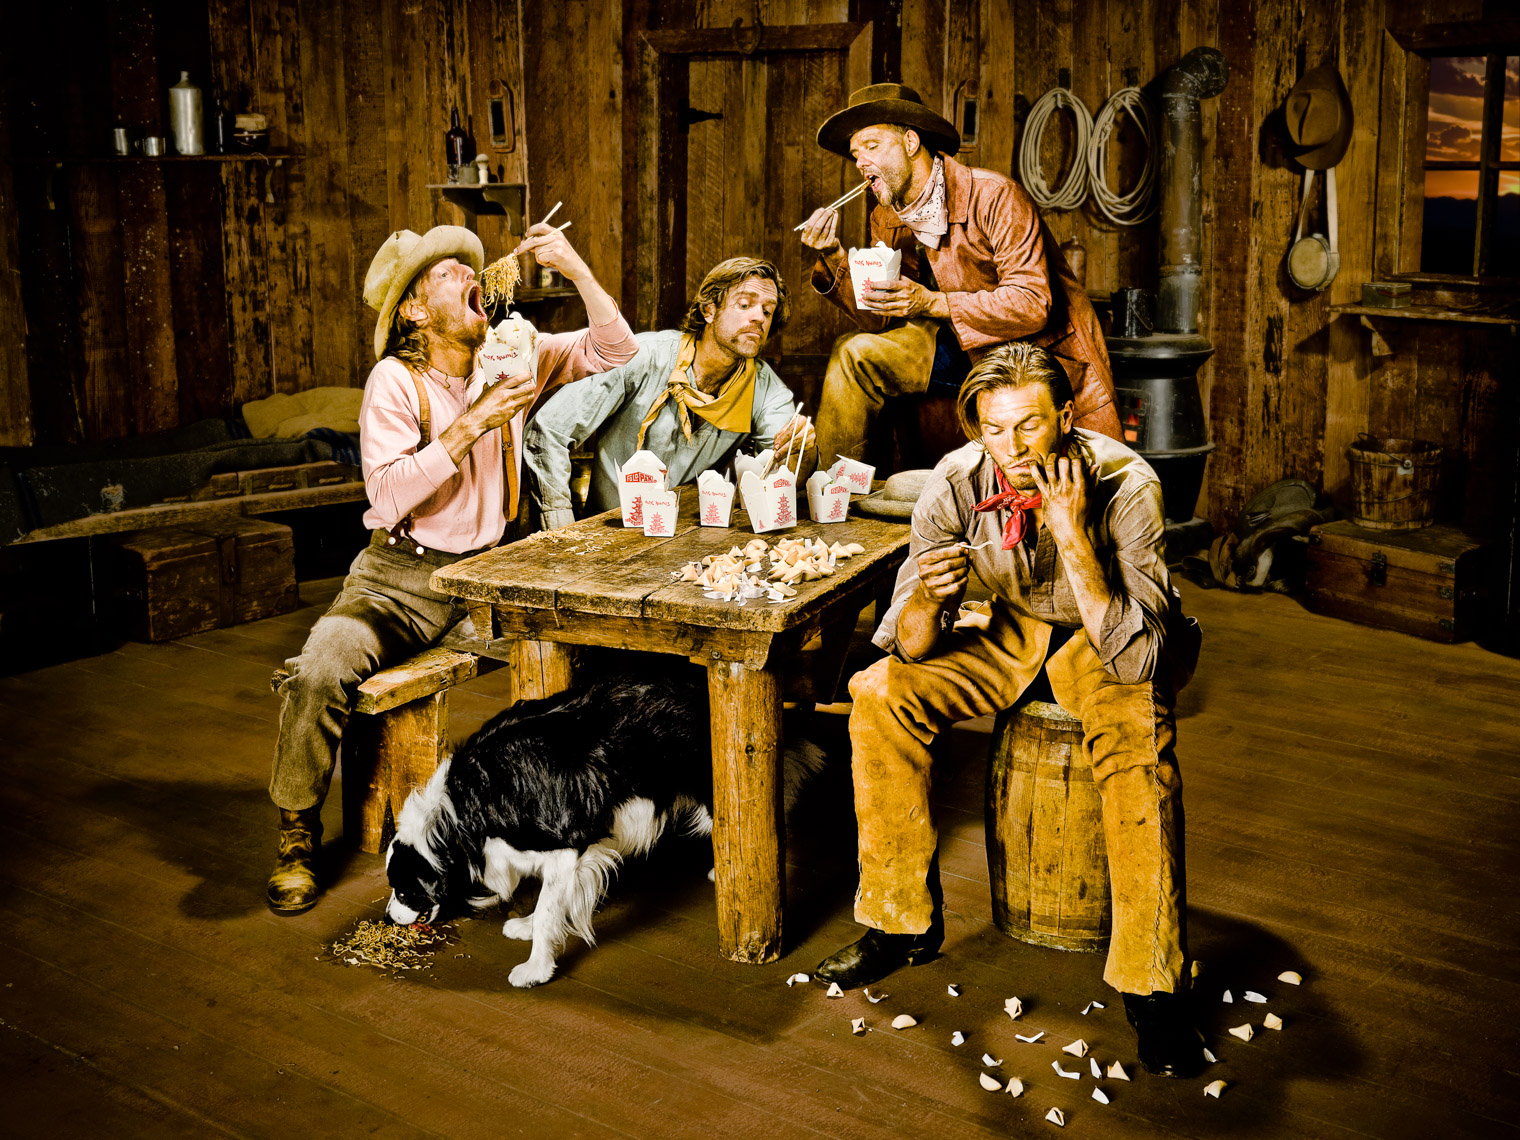 Los Angeles Photographer | Dana Hursey Photography | Conceptual Photography | Cowboy Chow Time